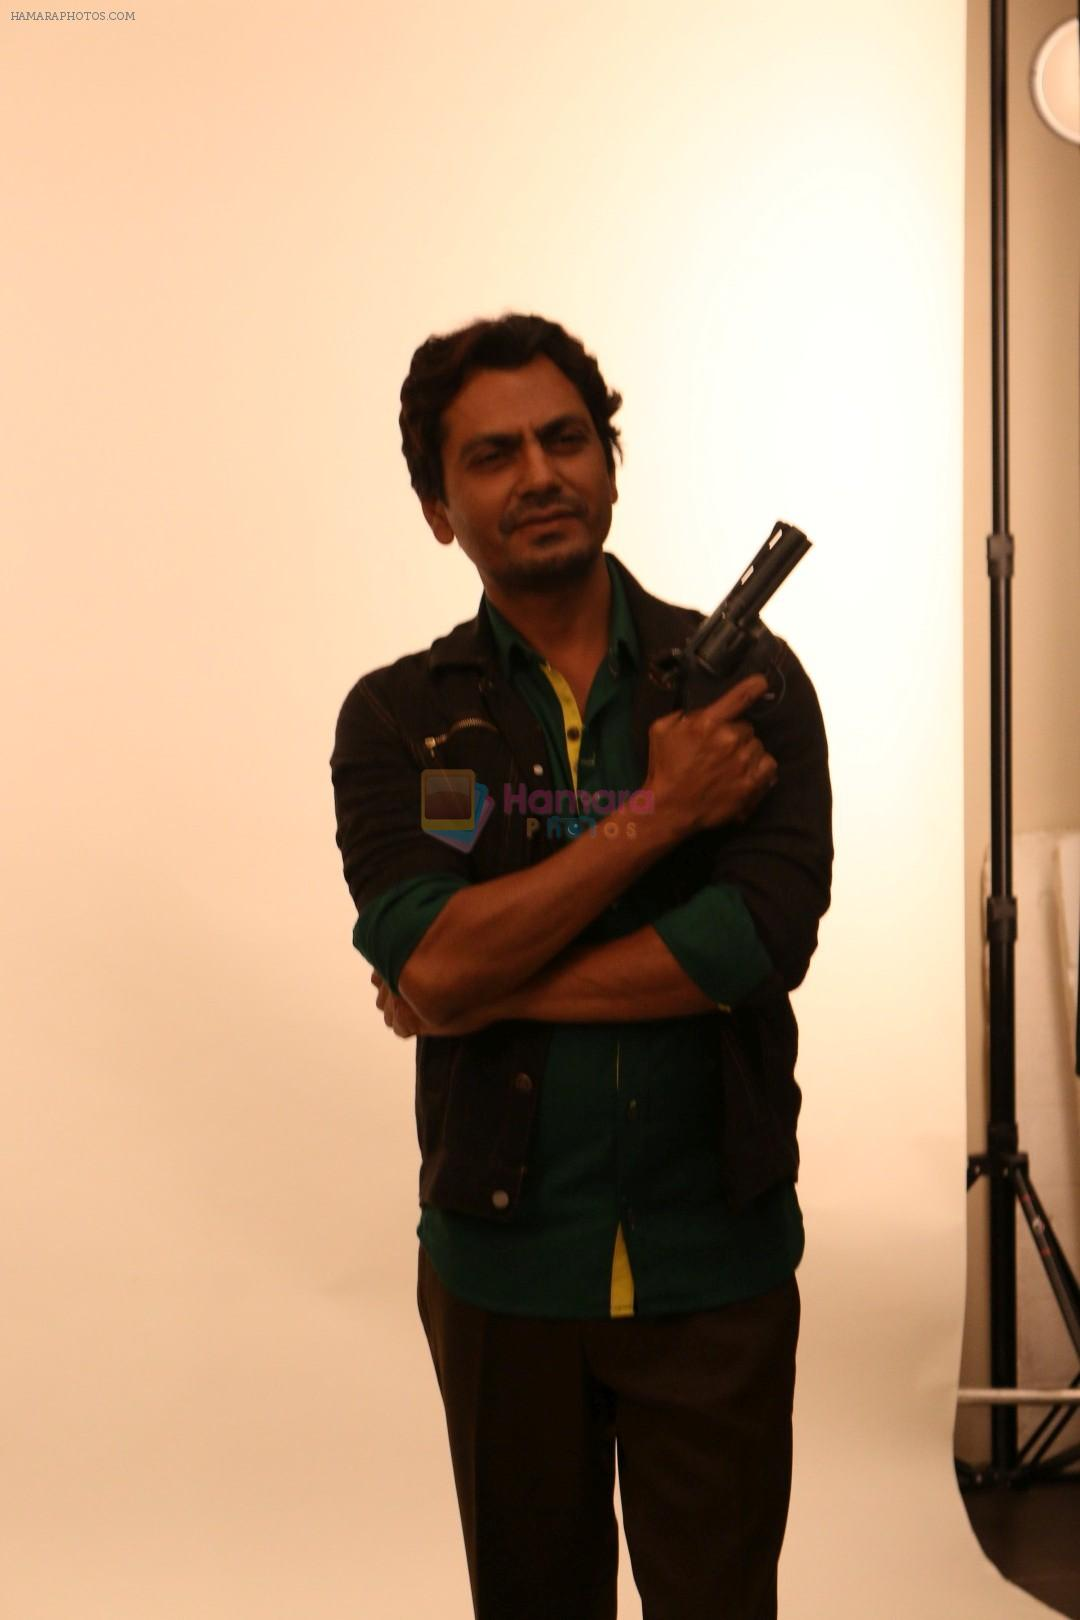 Nawazuddin Siddiqui at the Shooting For His First Movie Poster Of His Upcoming Film Babumoshai Bandookbaaz's on 19th March 2017